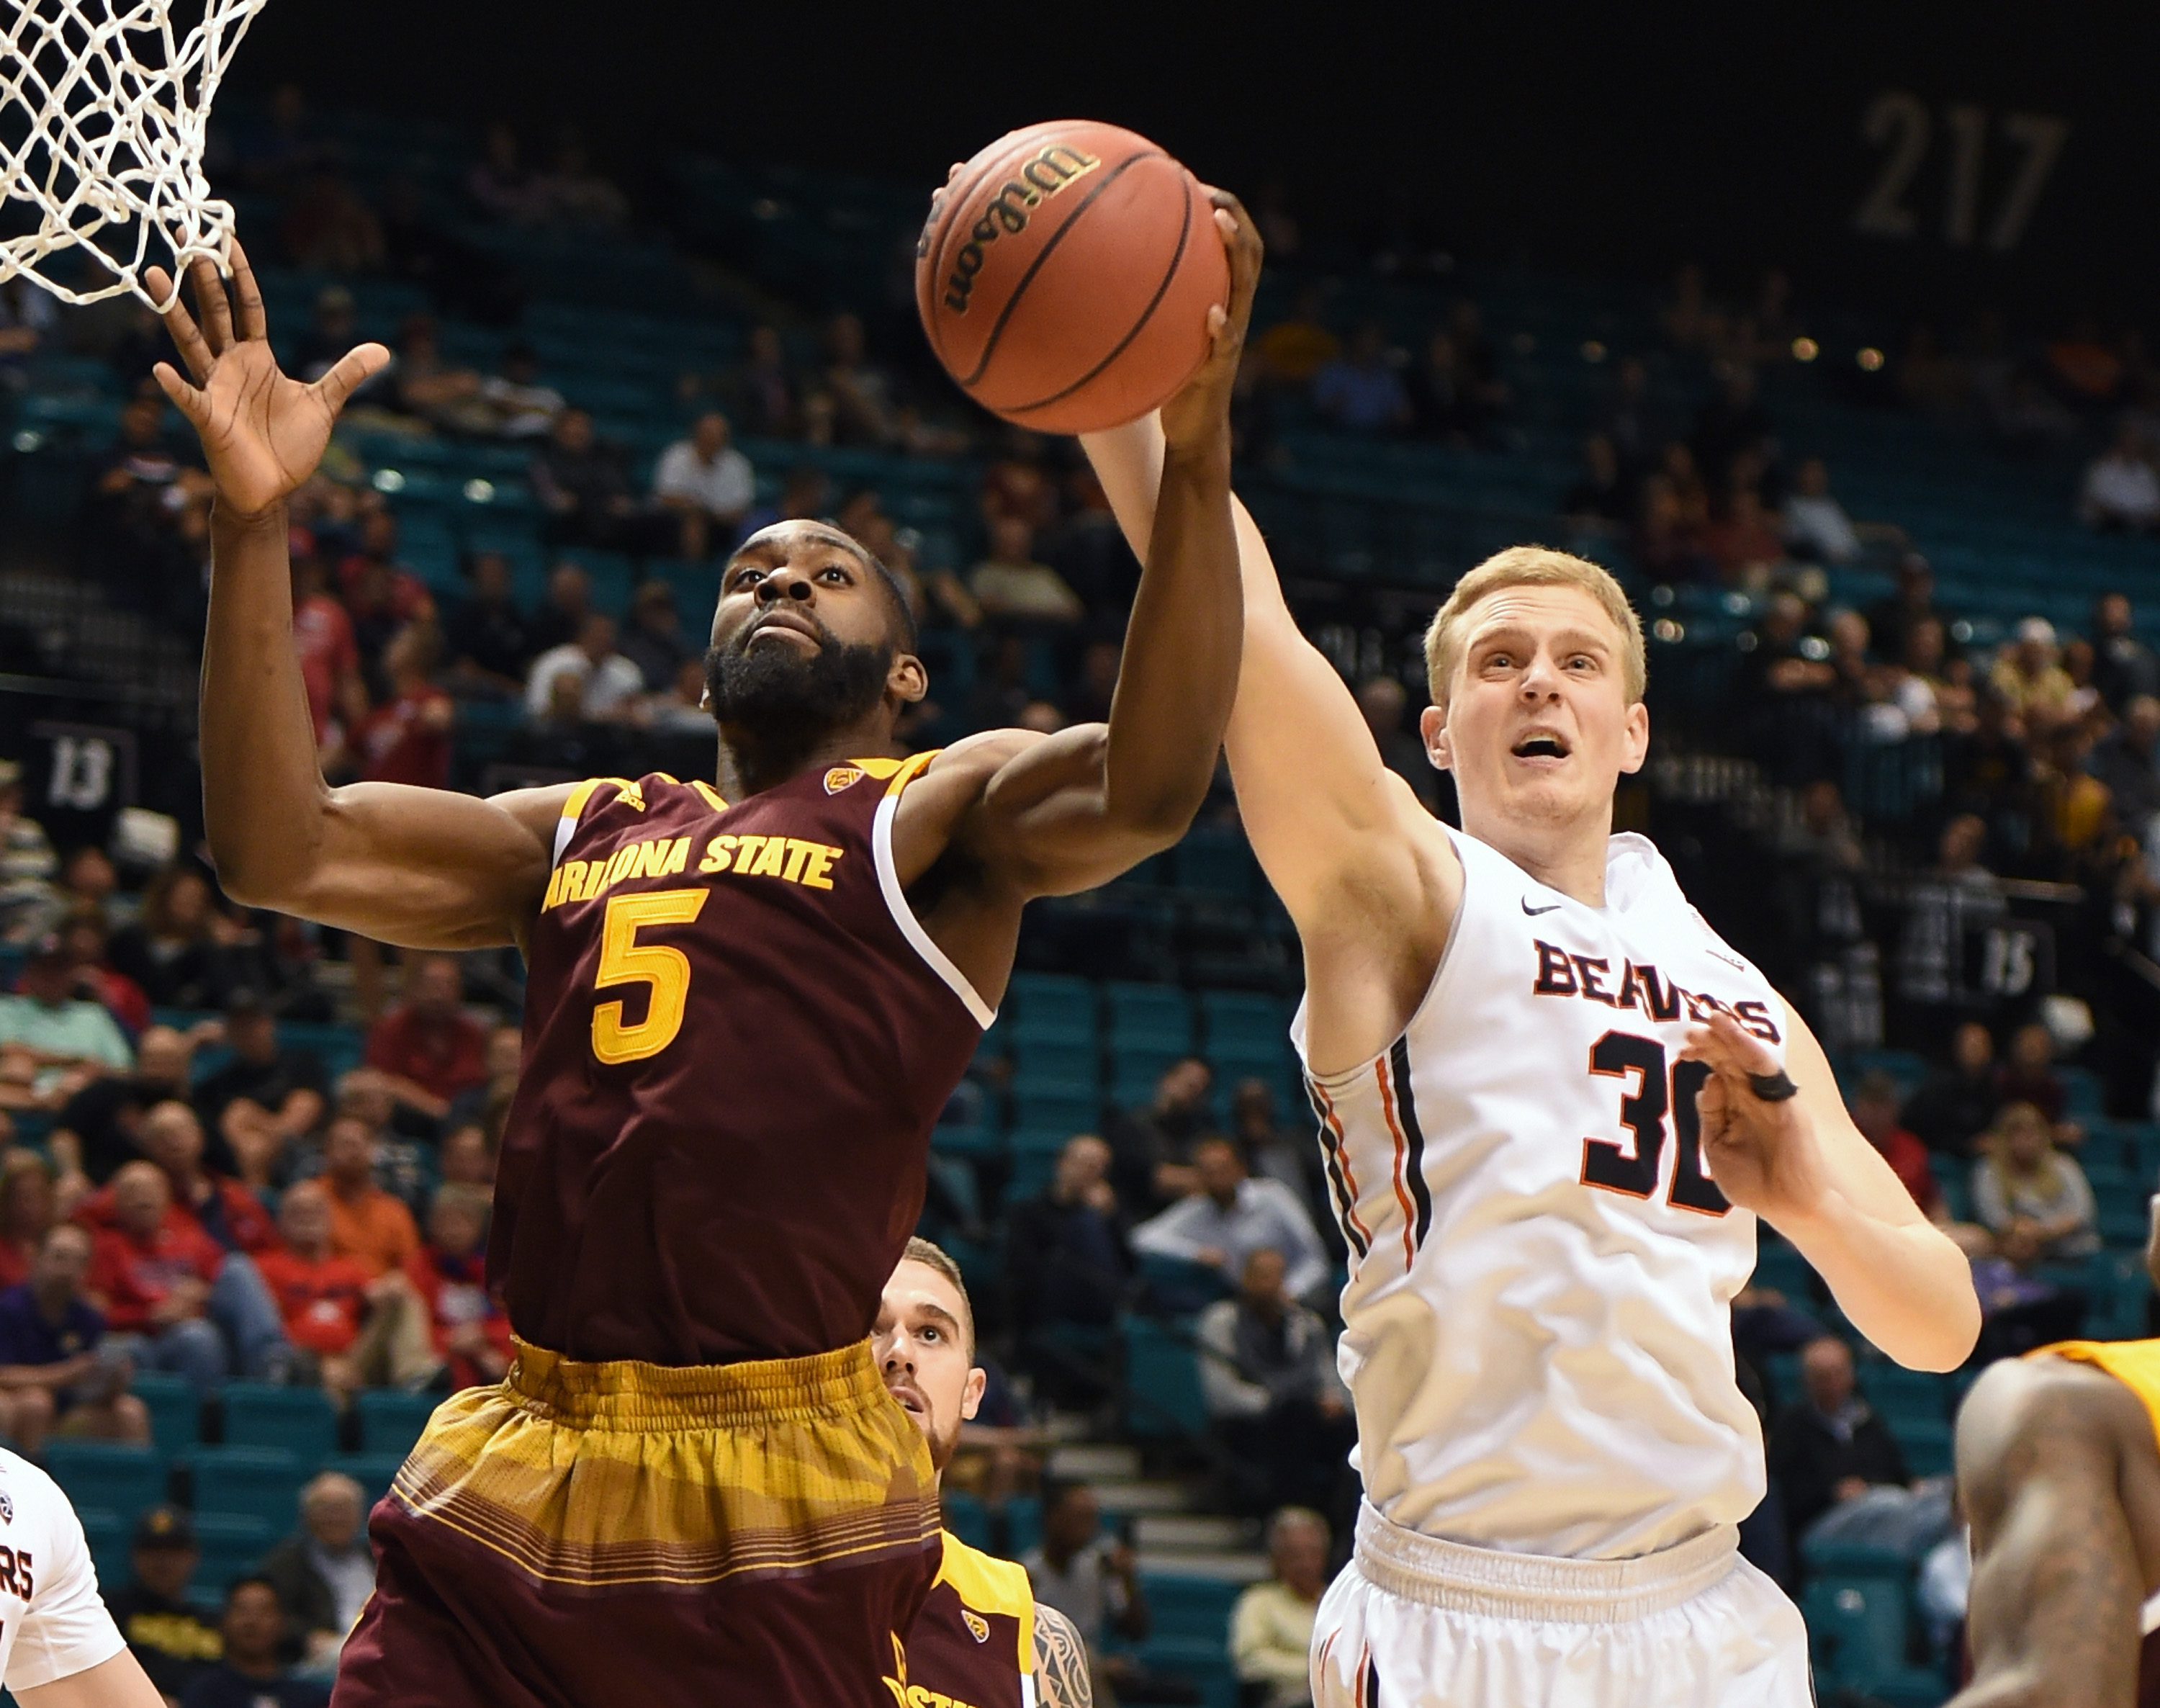 WATCH: Purdue player posterized by Sun Devil